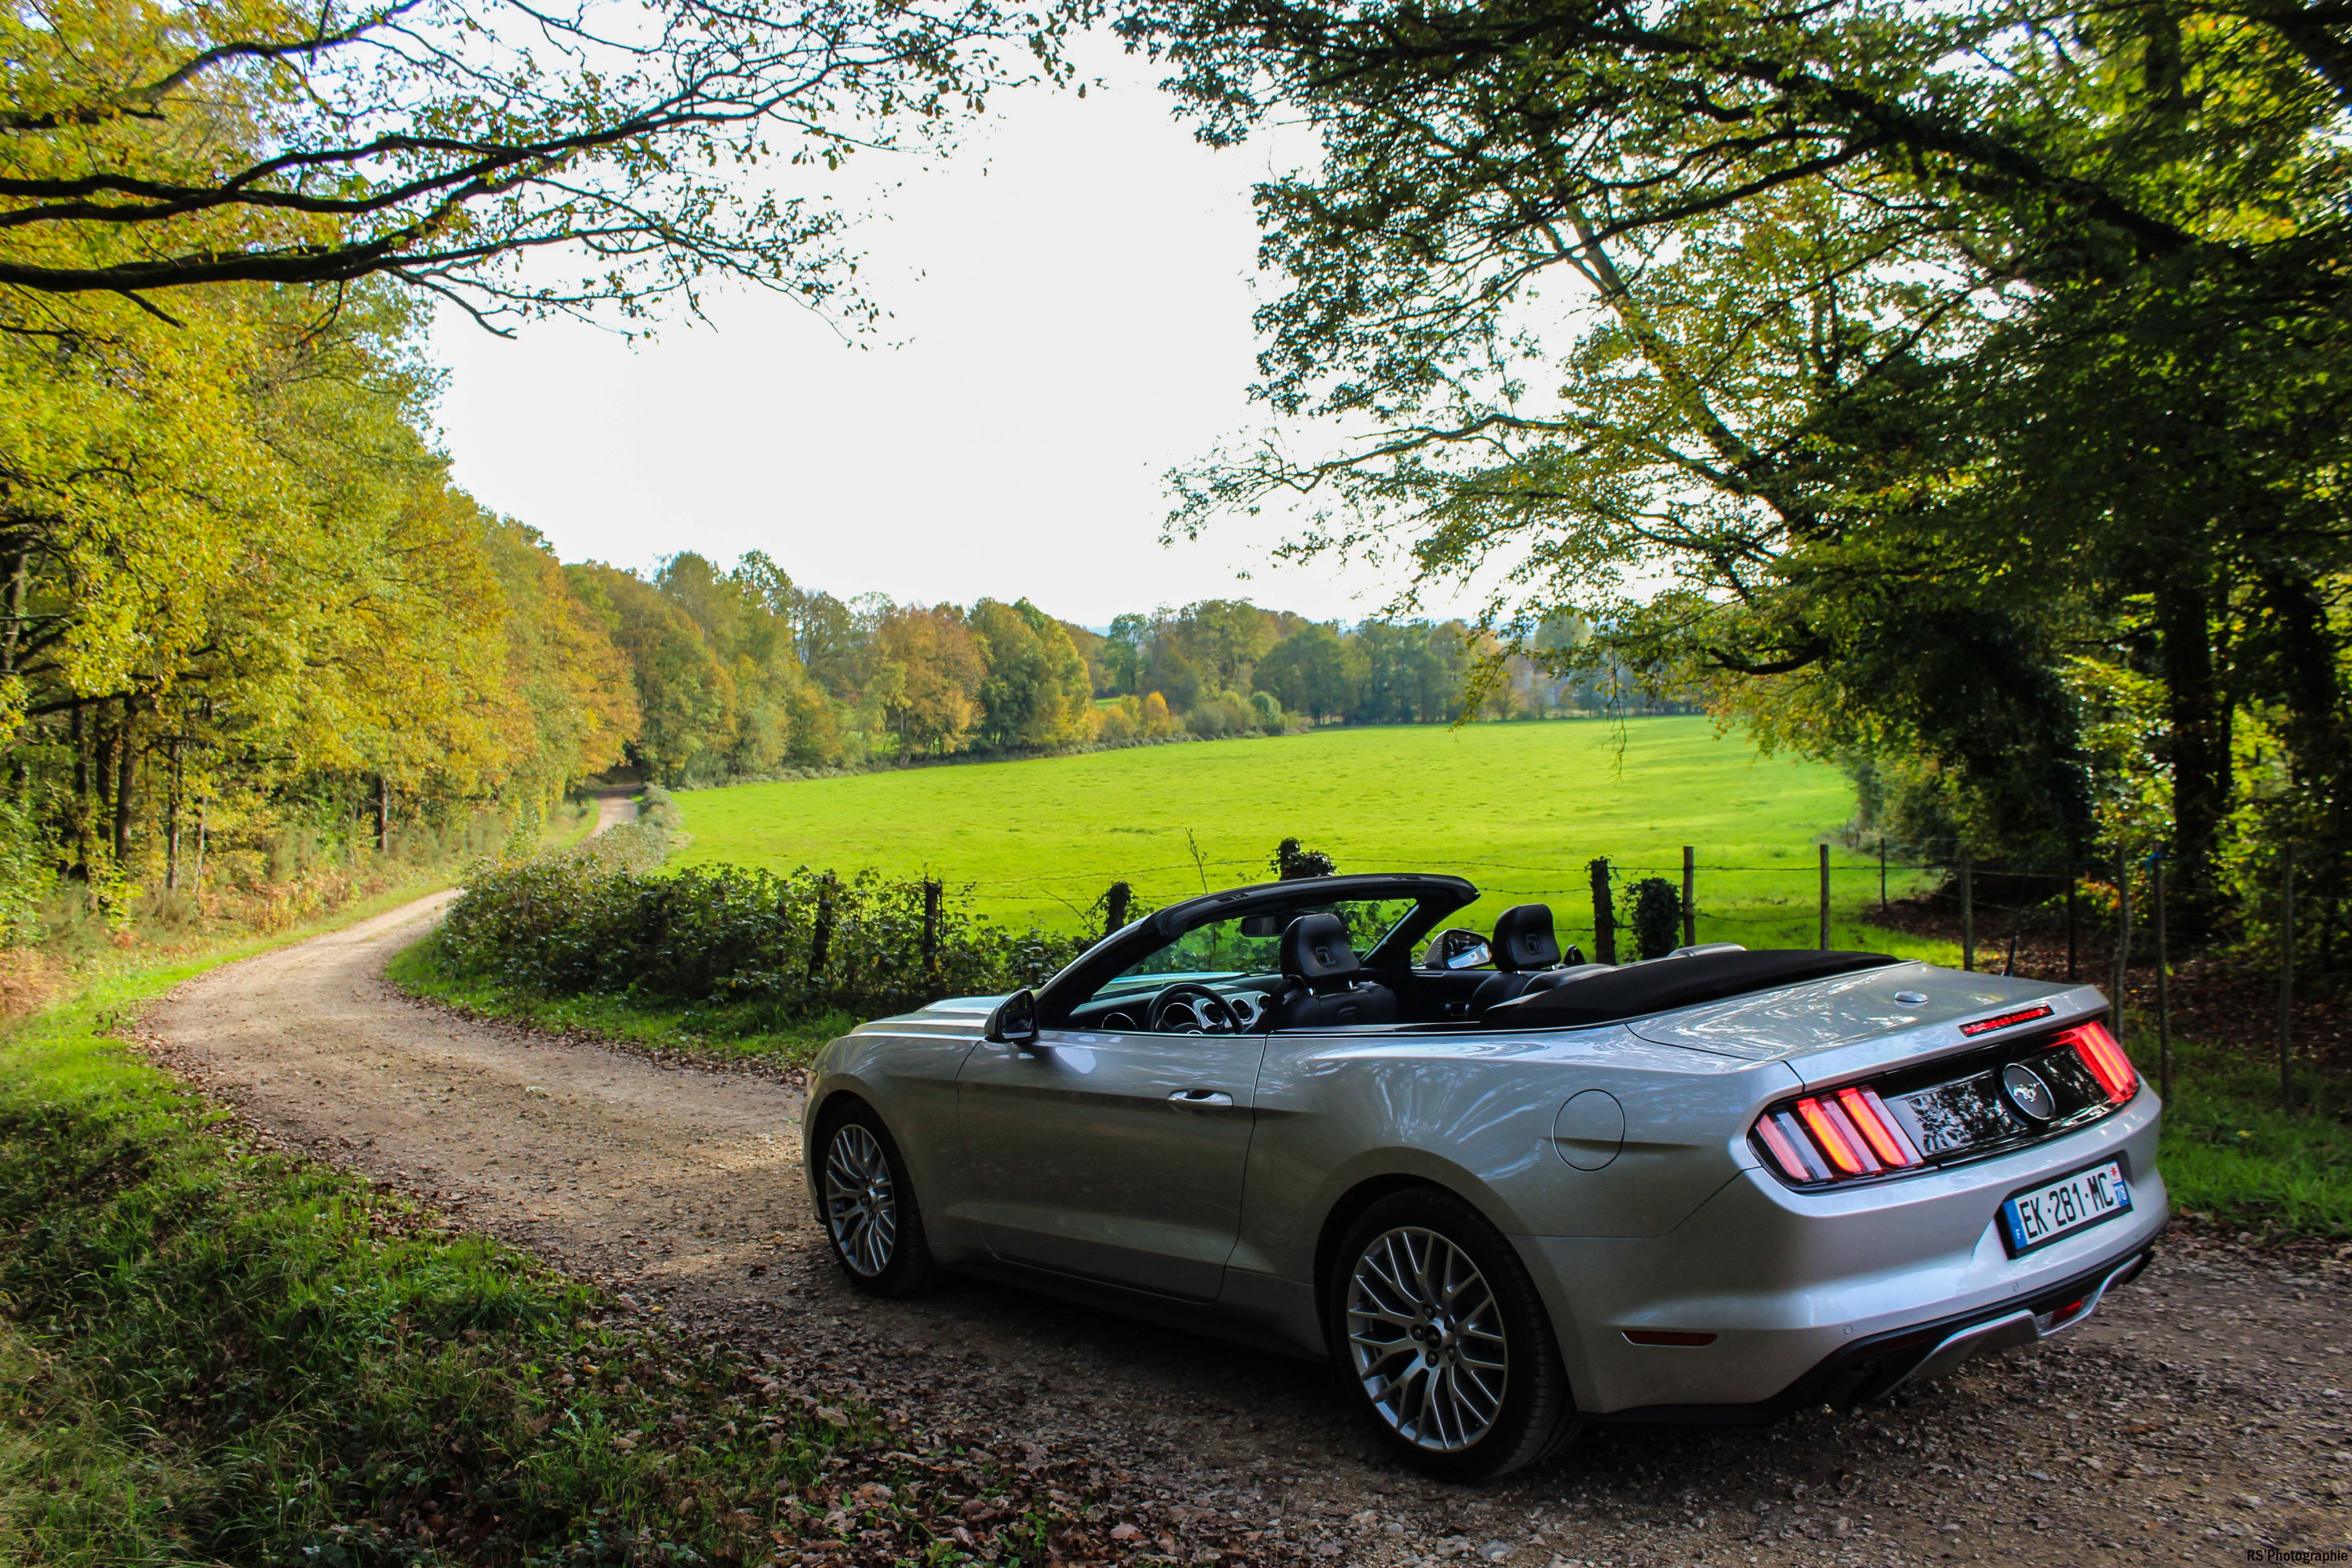 fordmustangeconvertible65-ford-mustang-convertible-ecoboost-arrière-rear-Arnaud Demasier-RSPhotographie